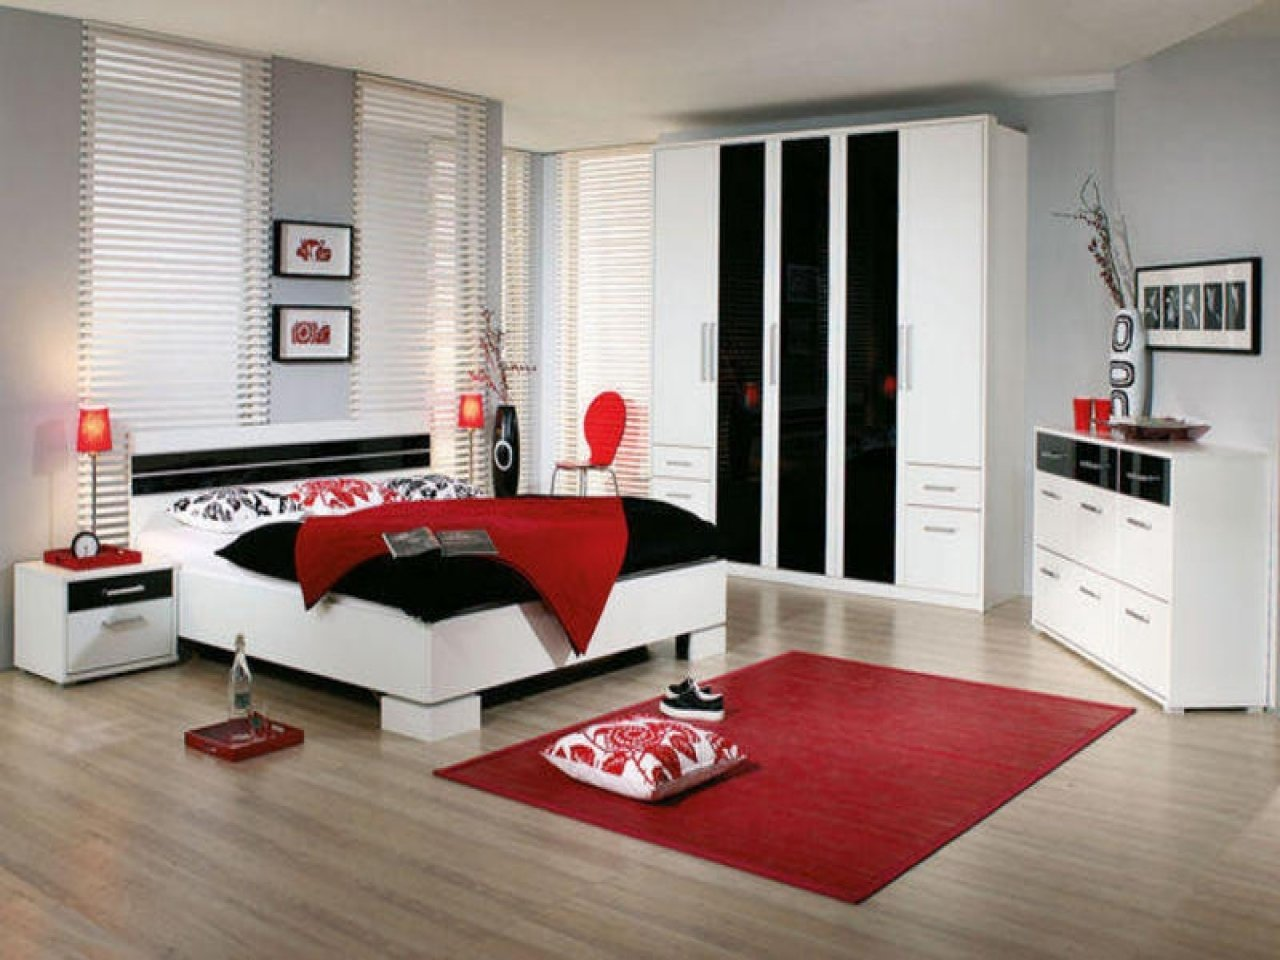 10 Lovely Black White And Red Bedroom Ideas red black bedroom ideas nurani